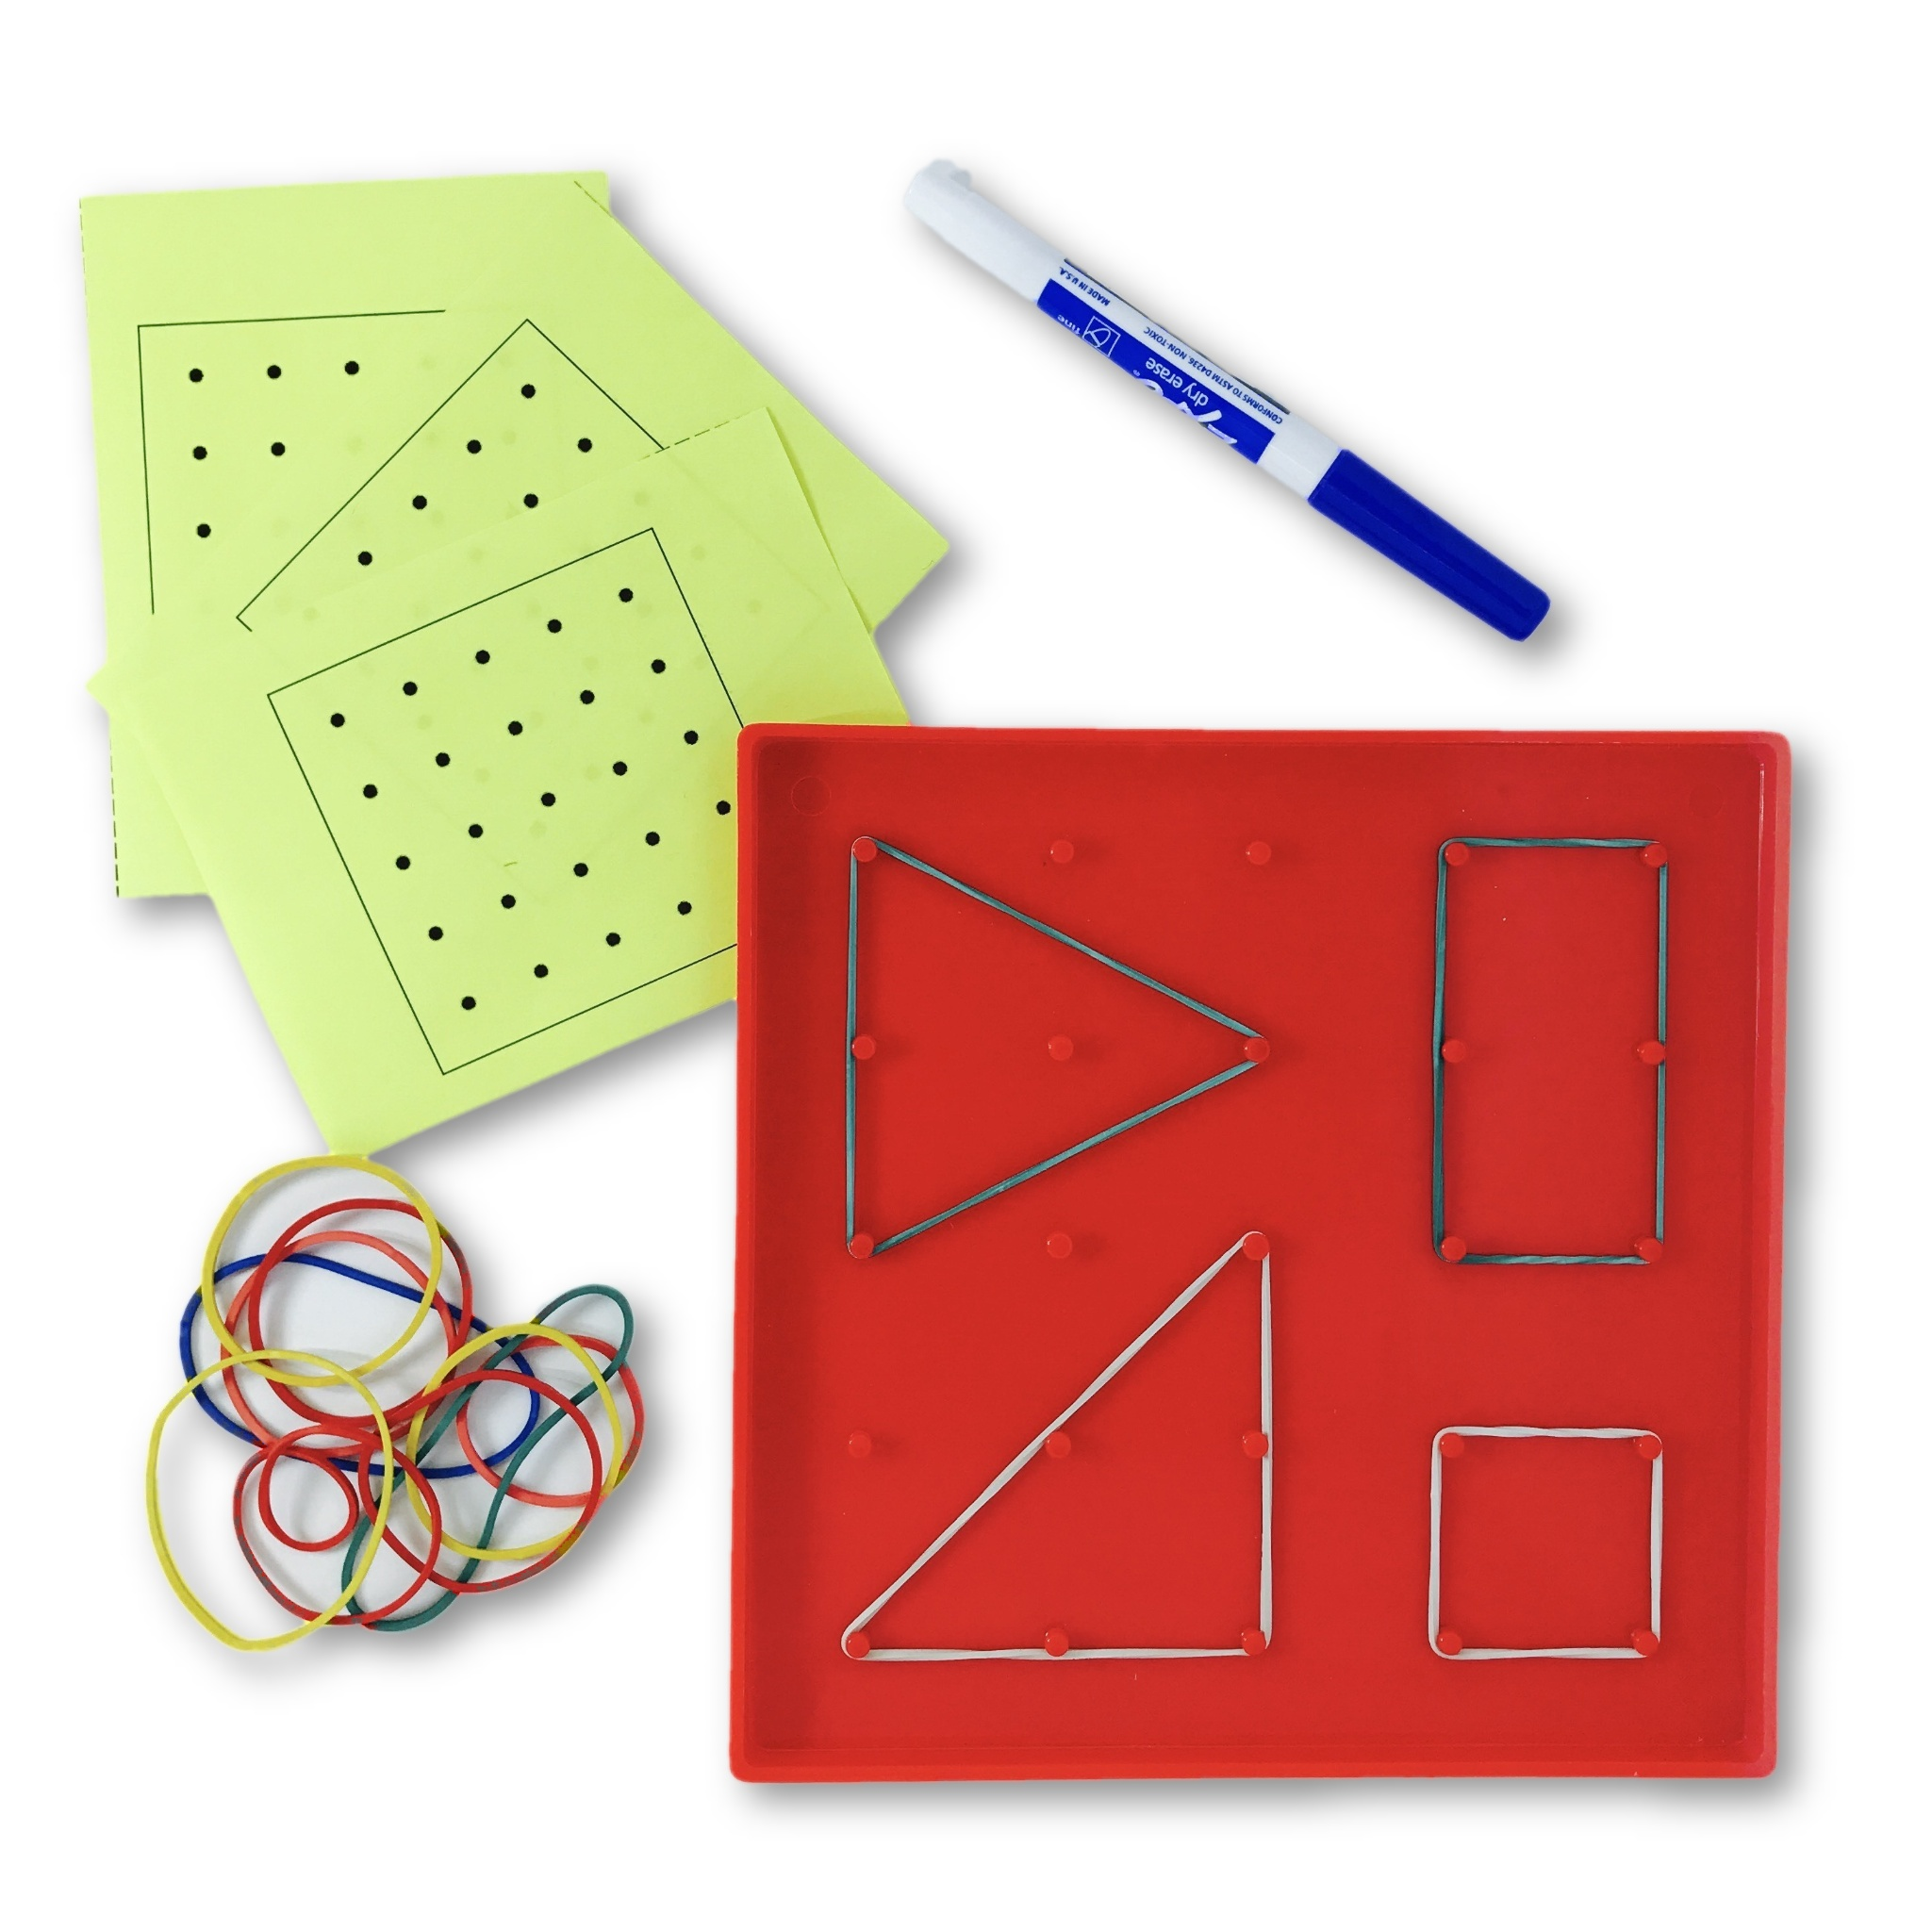 Shapes on the Geoboard